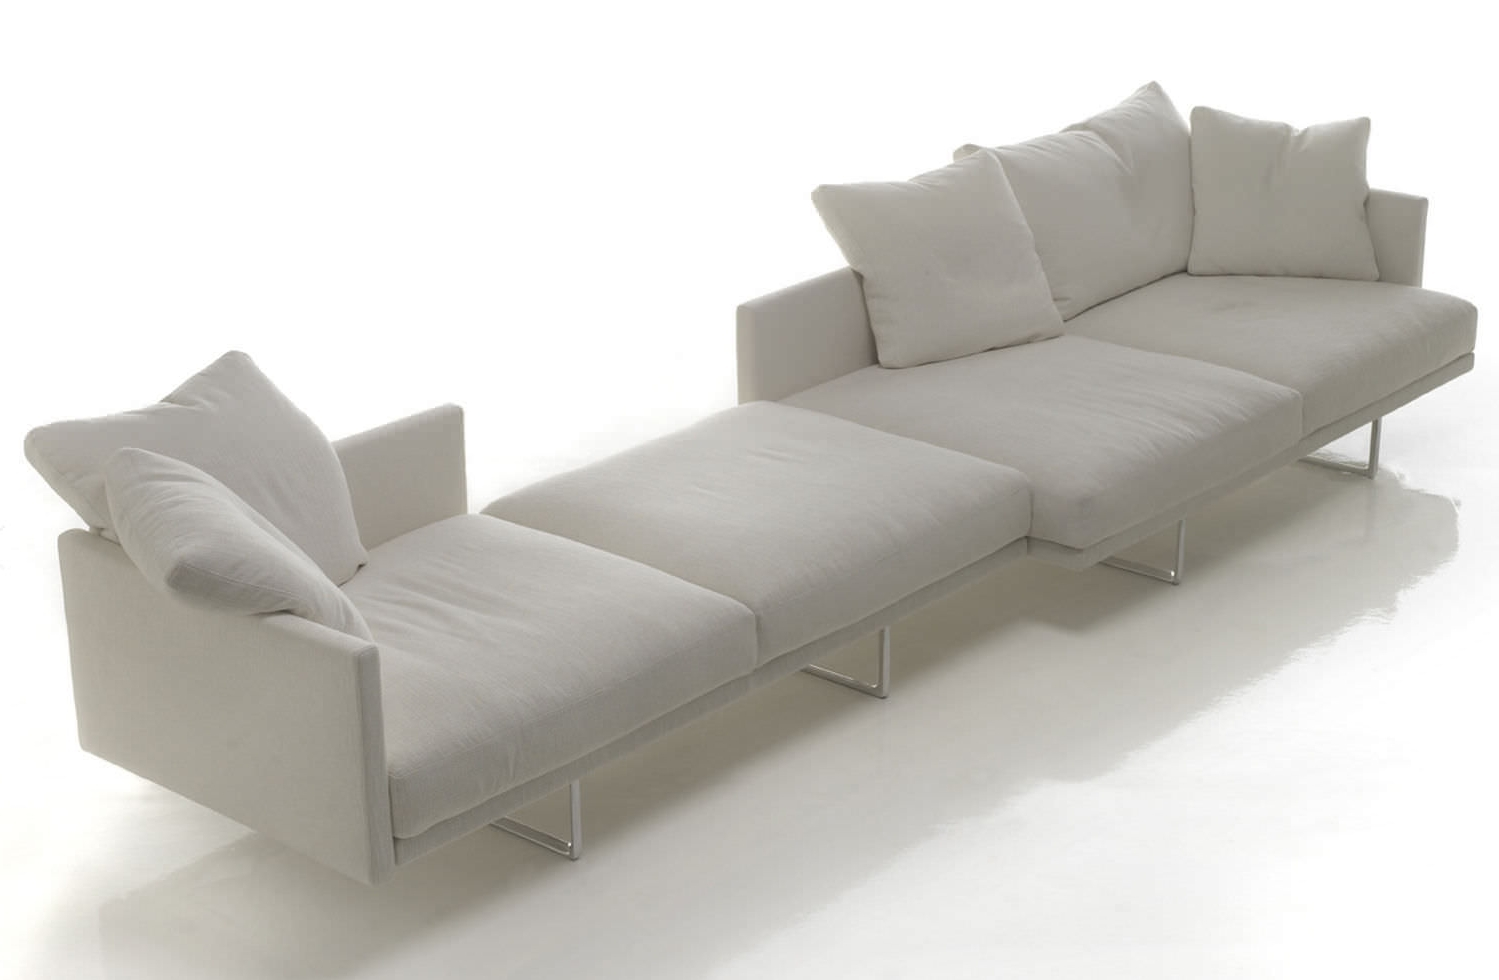 Newest Stunning Design Ideas Of Modular Sofas For Small Spaces (View 12 of 20)